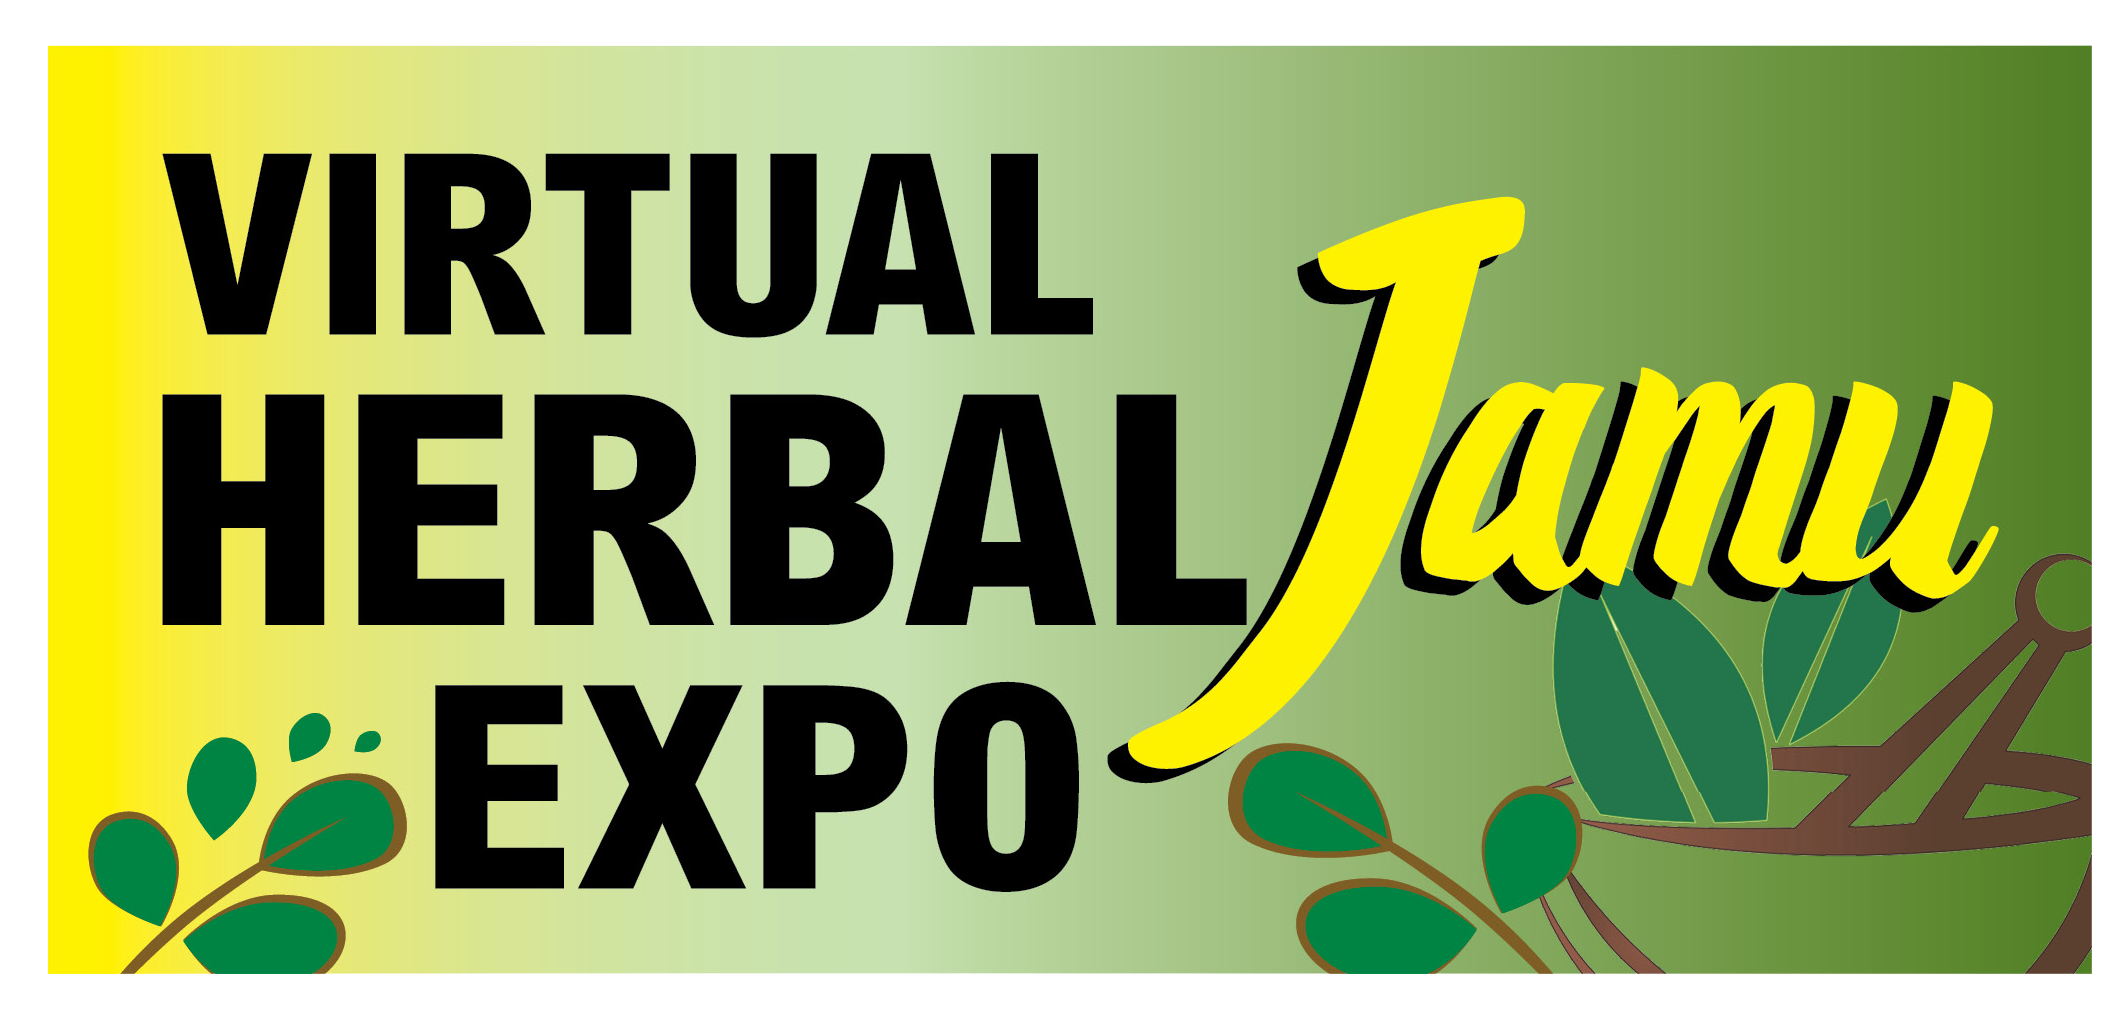 VIRTUAL HERBAL AND JAMU INDONESIA EXPO 2020